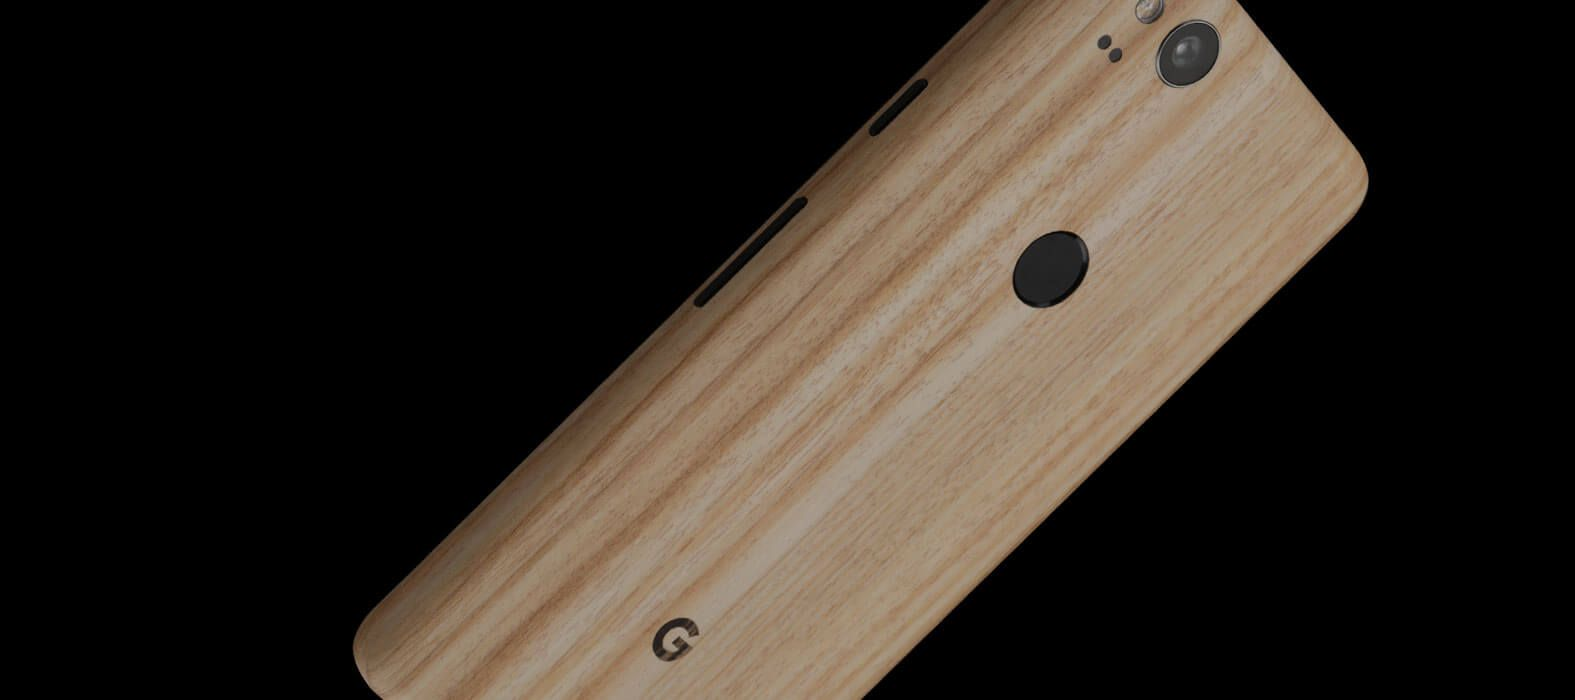 Pixel 2 Wraps, Skins, Decals, Bamboo wood